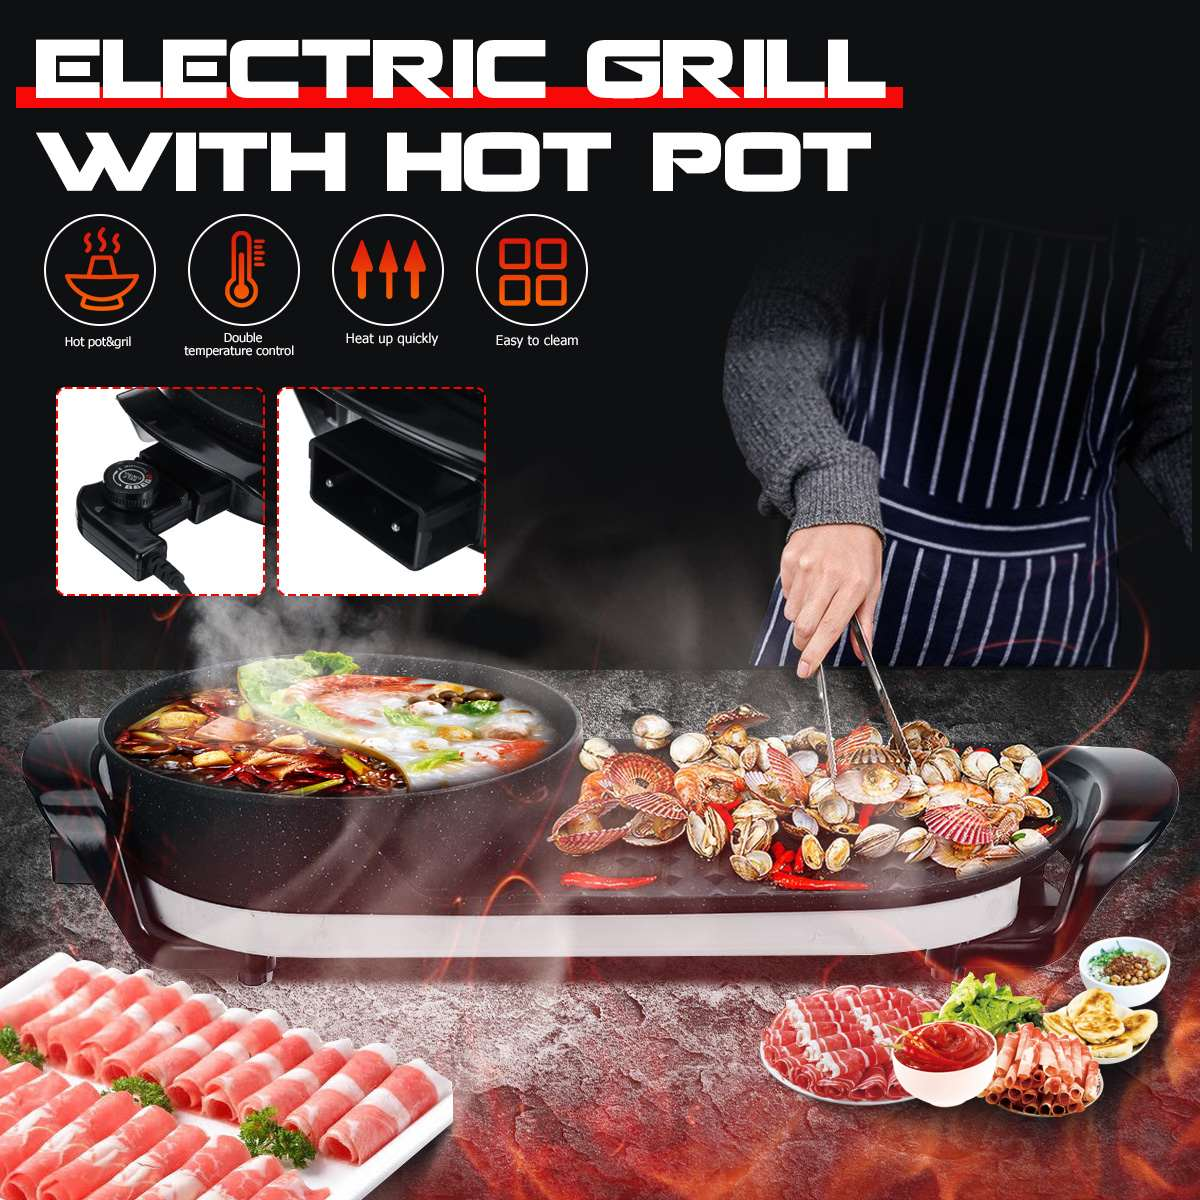 1600w electric shabu roasted pot multifunctional electric pan grill bbq grill raclette grill electric hotpot with grill pan 2 In 1 Barbecue Hot Pot Electric bbq Grill And Hot Pot Smokeless Indoor Barbecue Grill 220v Multifunctional Home Party Non Stick